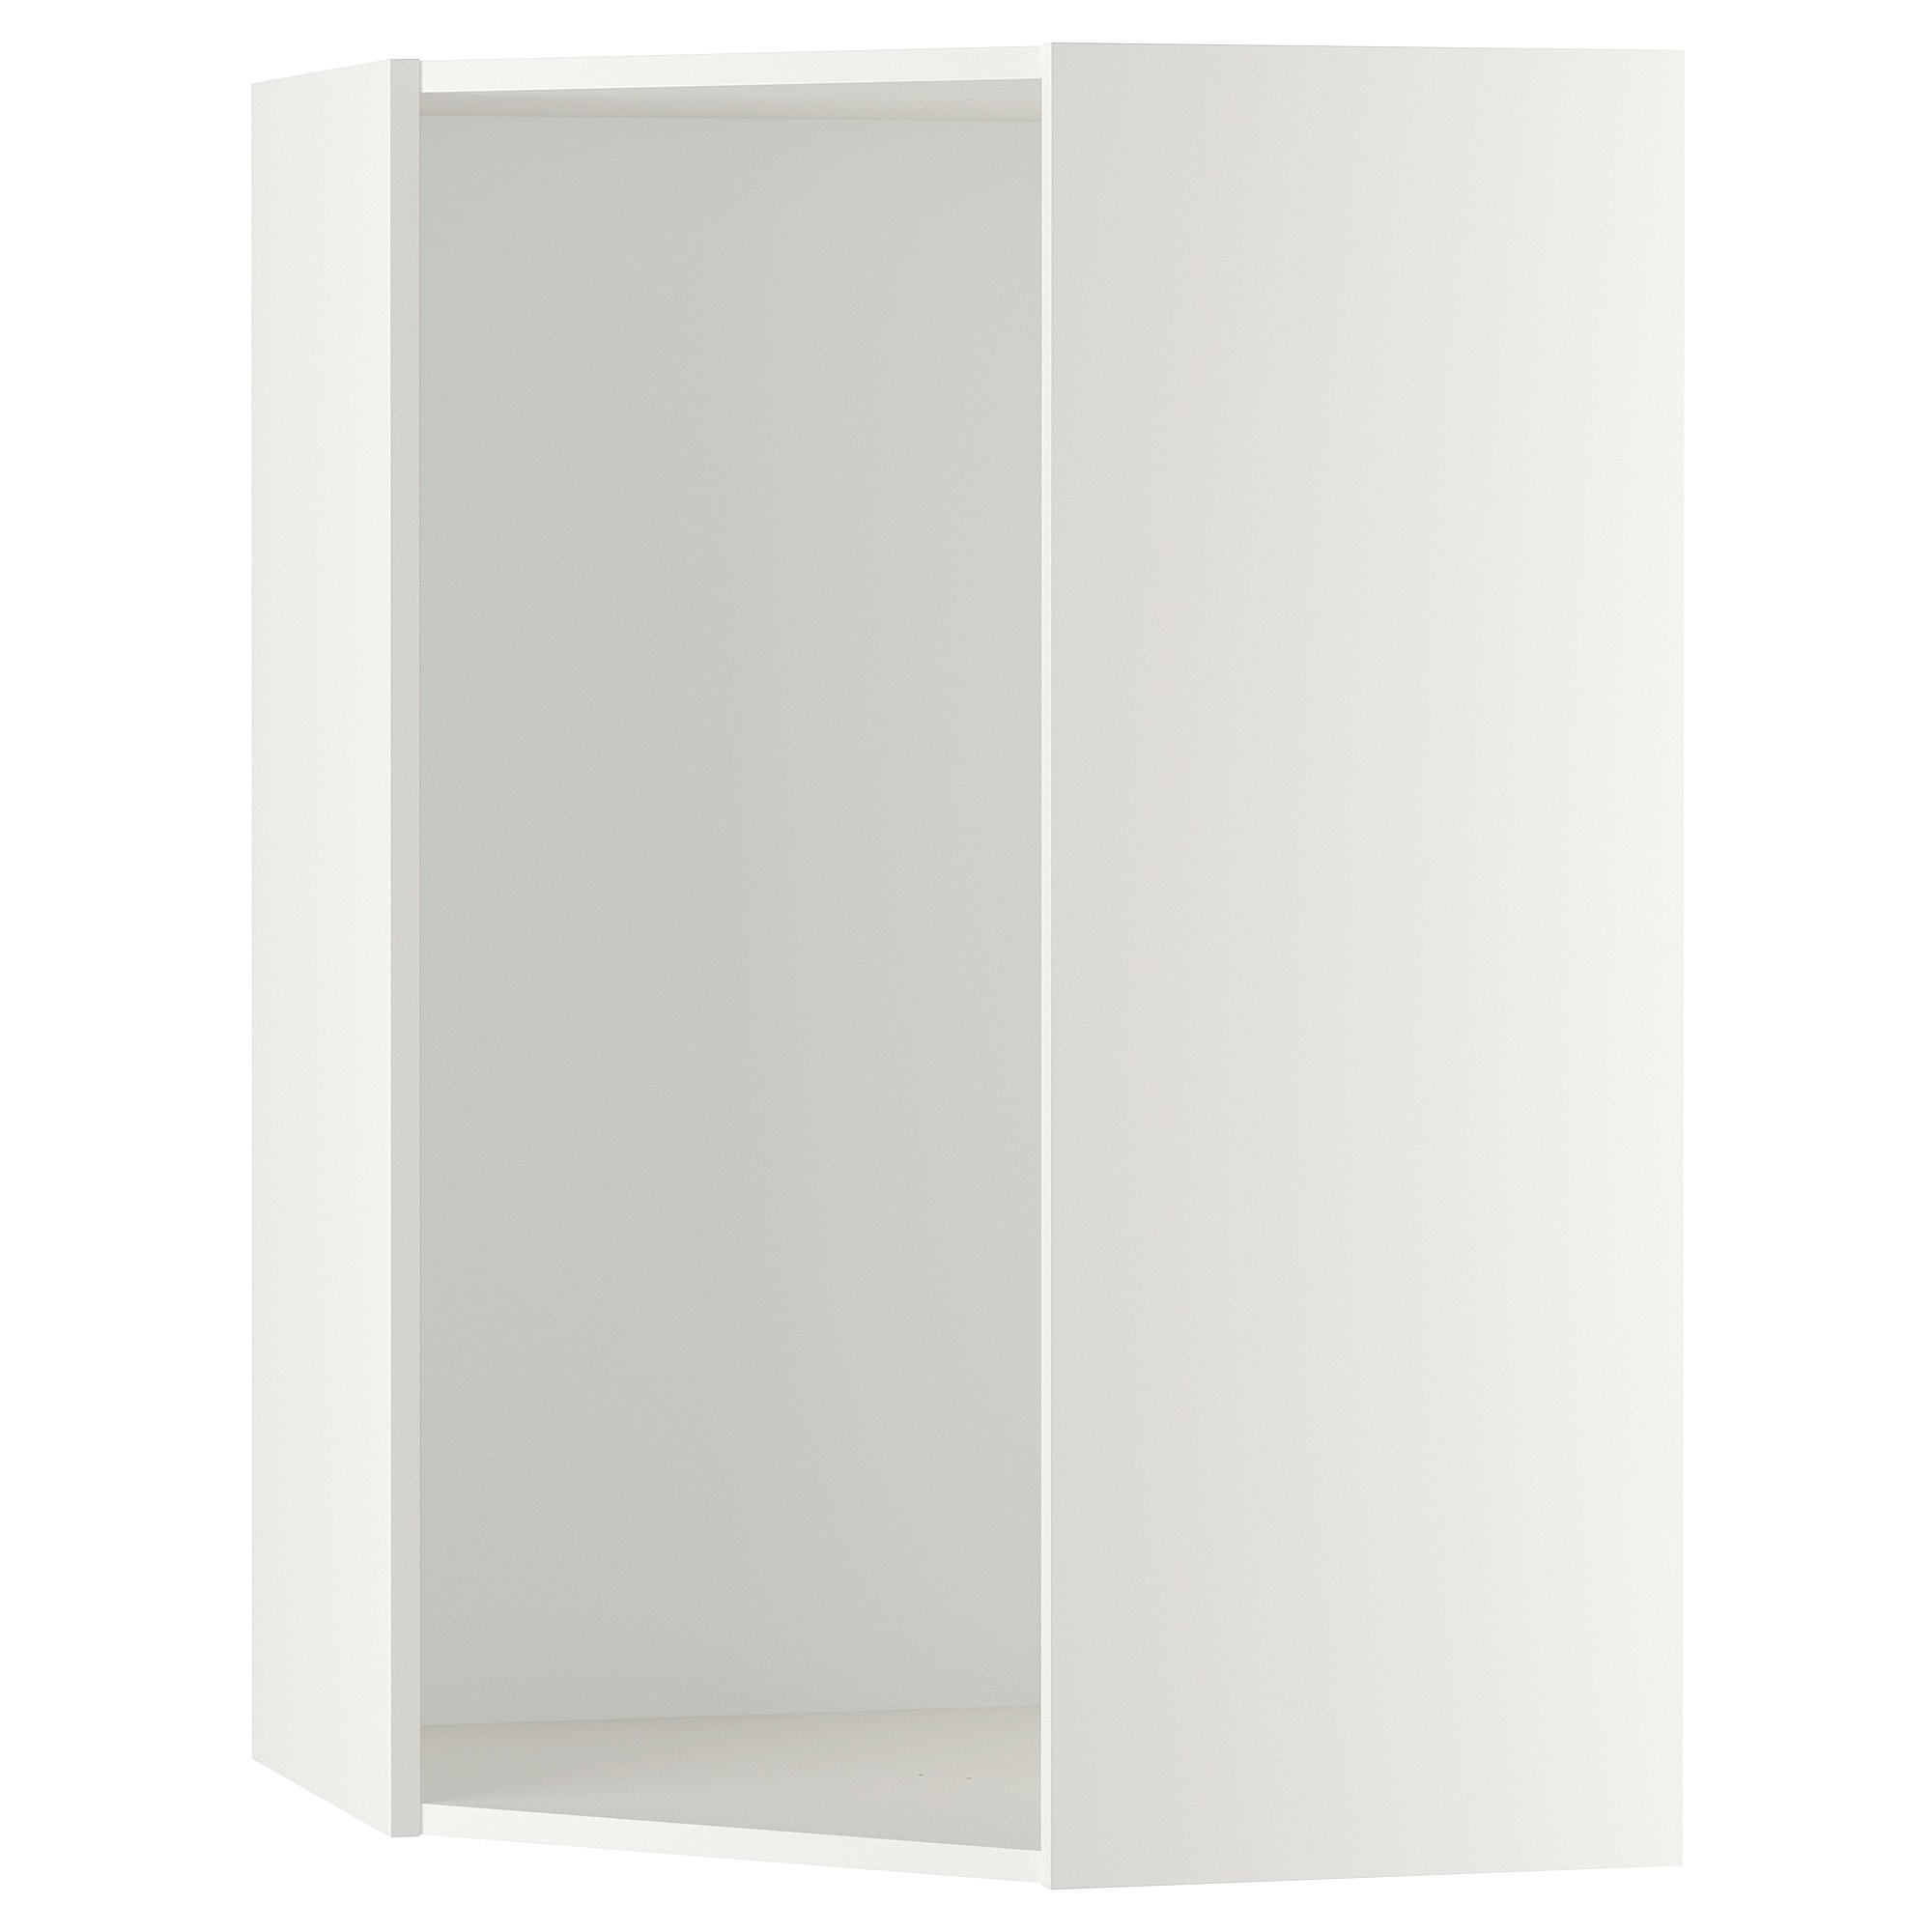 Metod Corner Wall Cabinet With Shelves White Ringhult Light Grey 68x100 Cm Corner Wall Ikea Corner Base Cabinet